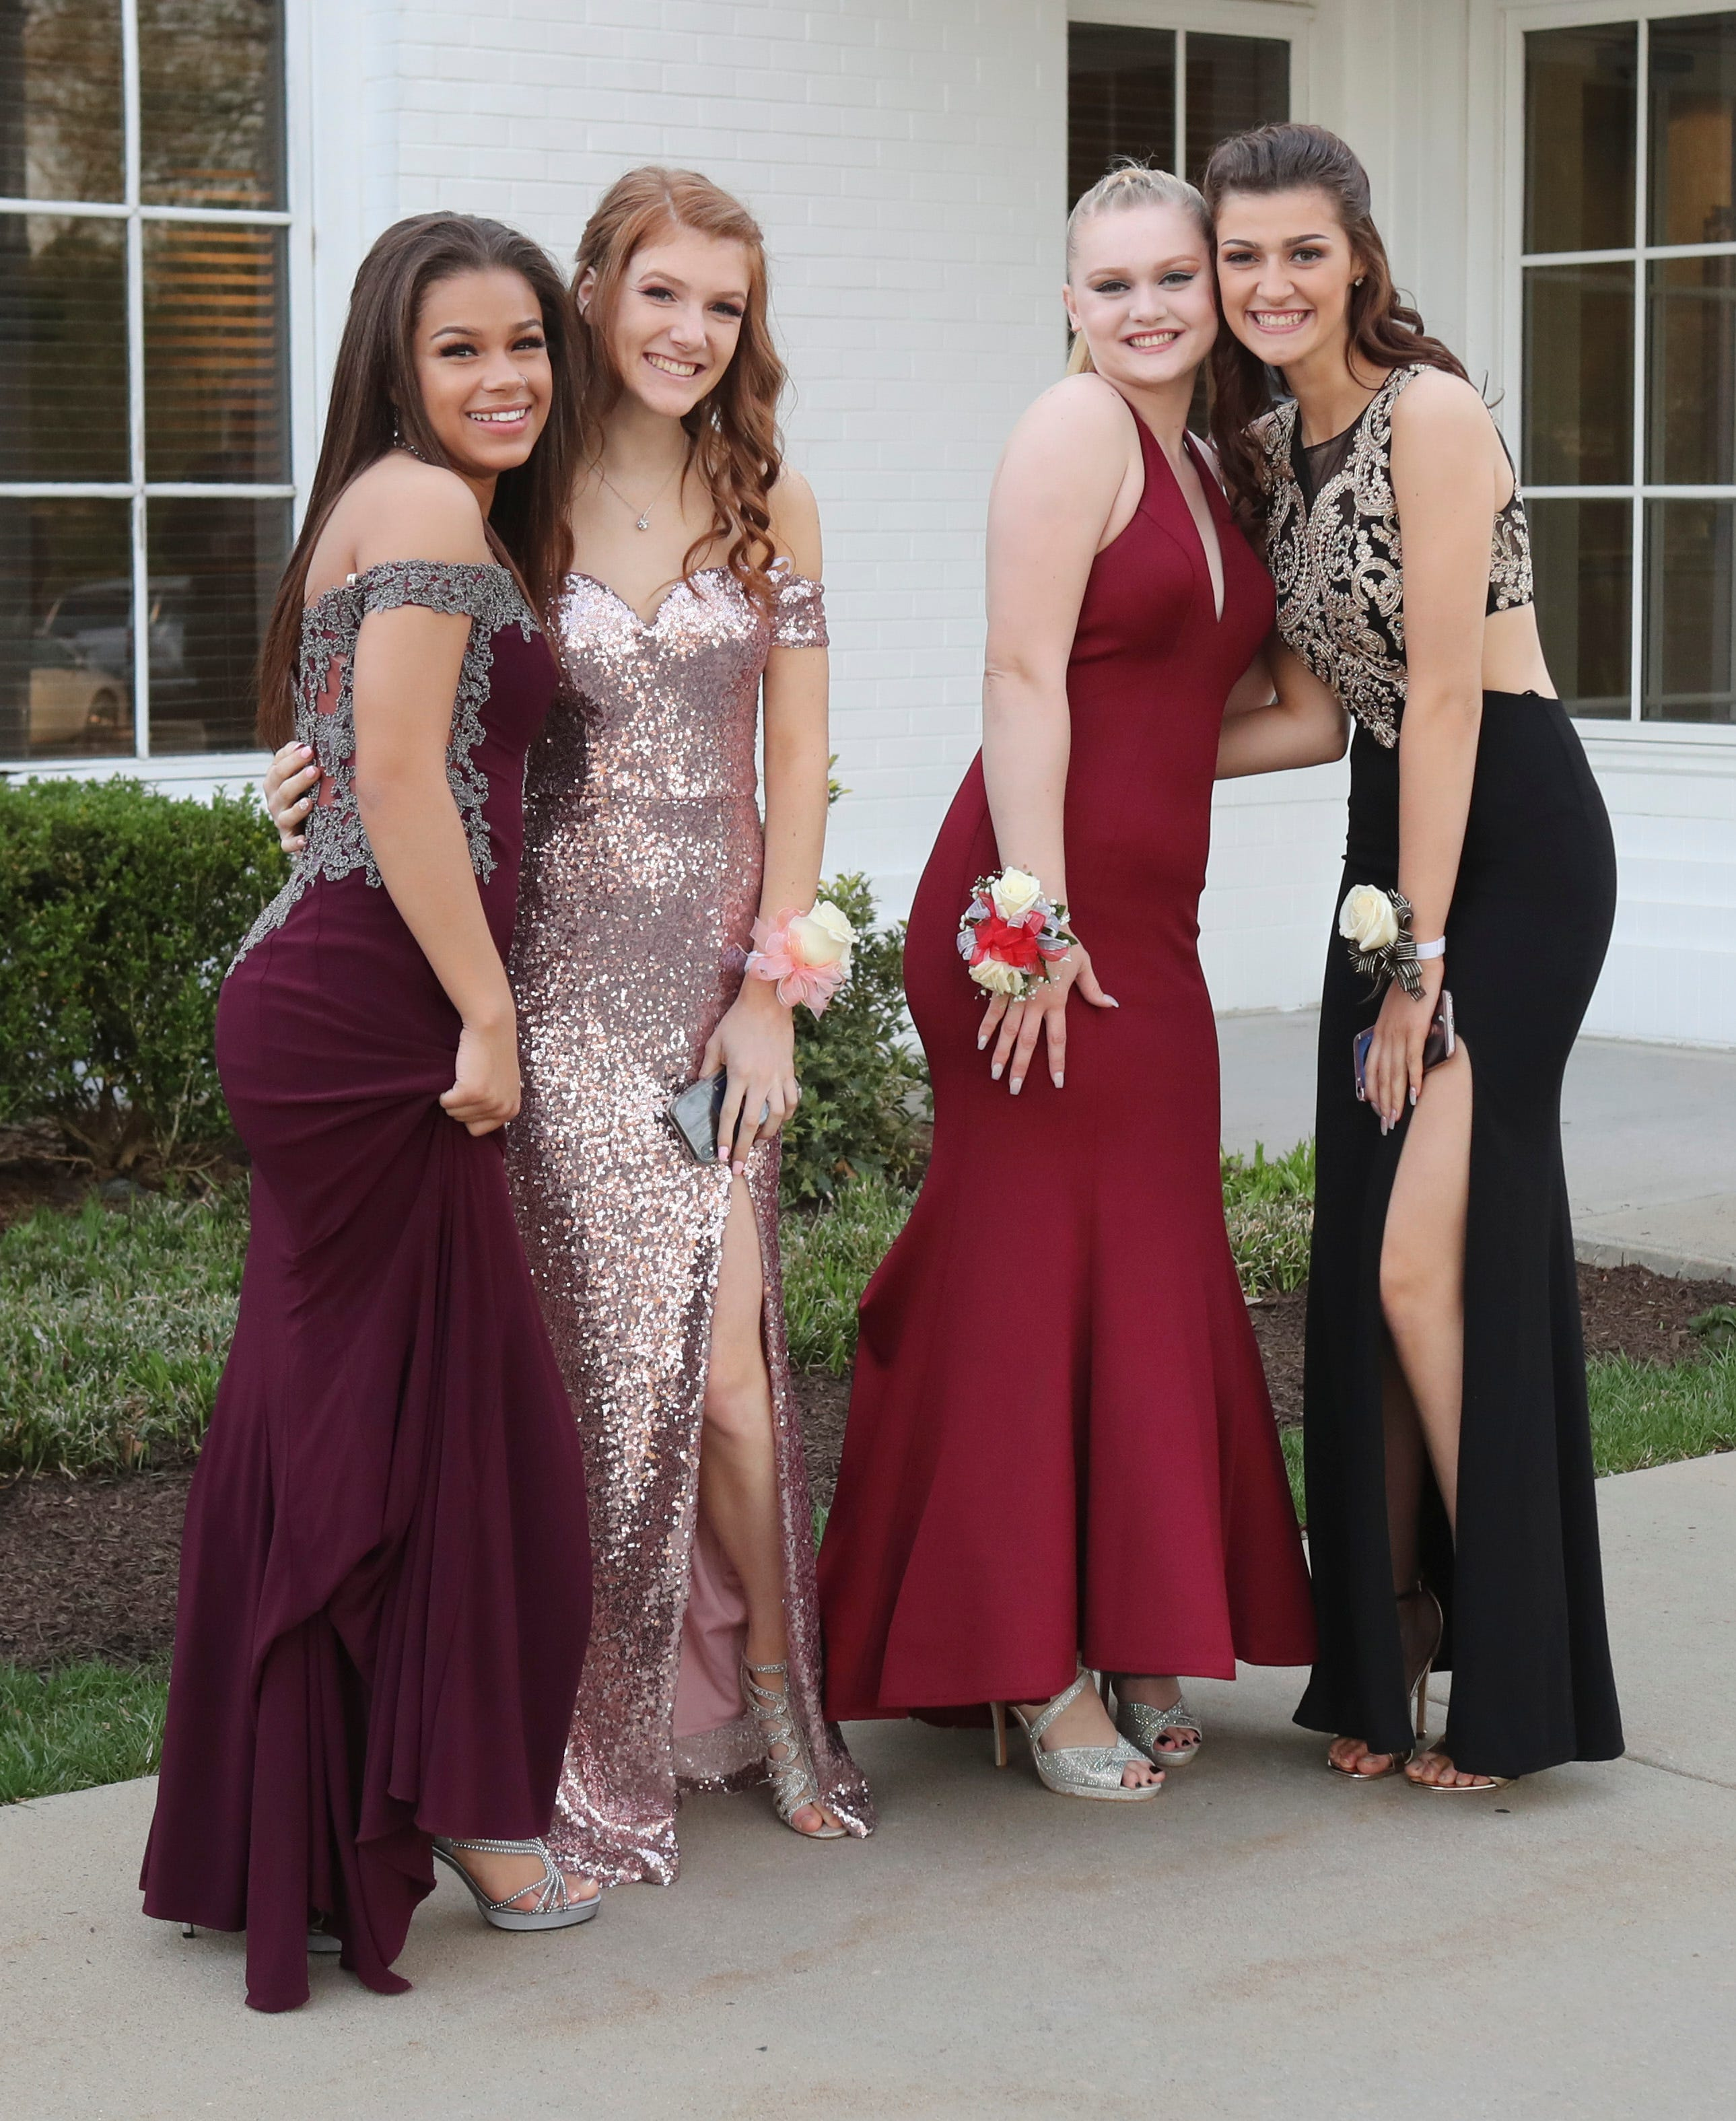 Delaware high school prom 2019 photos: The students, the fashion